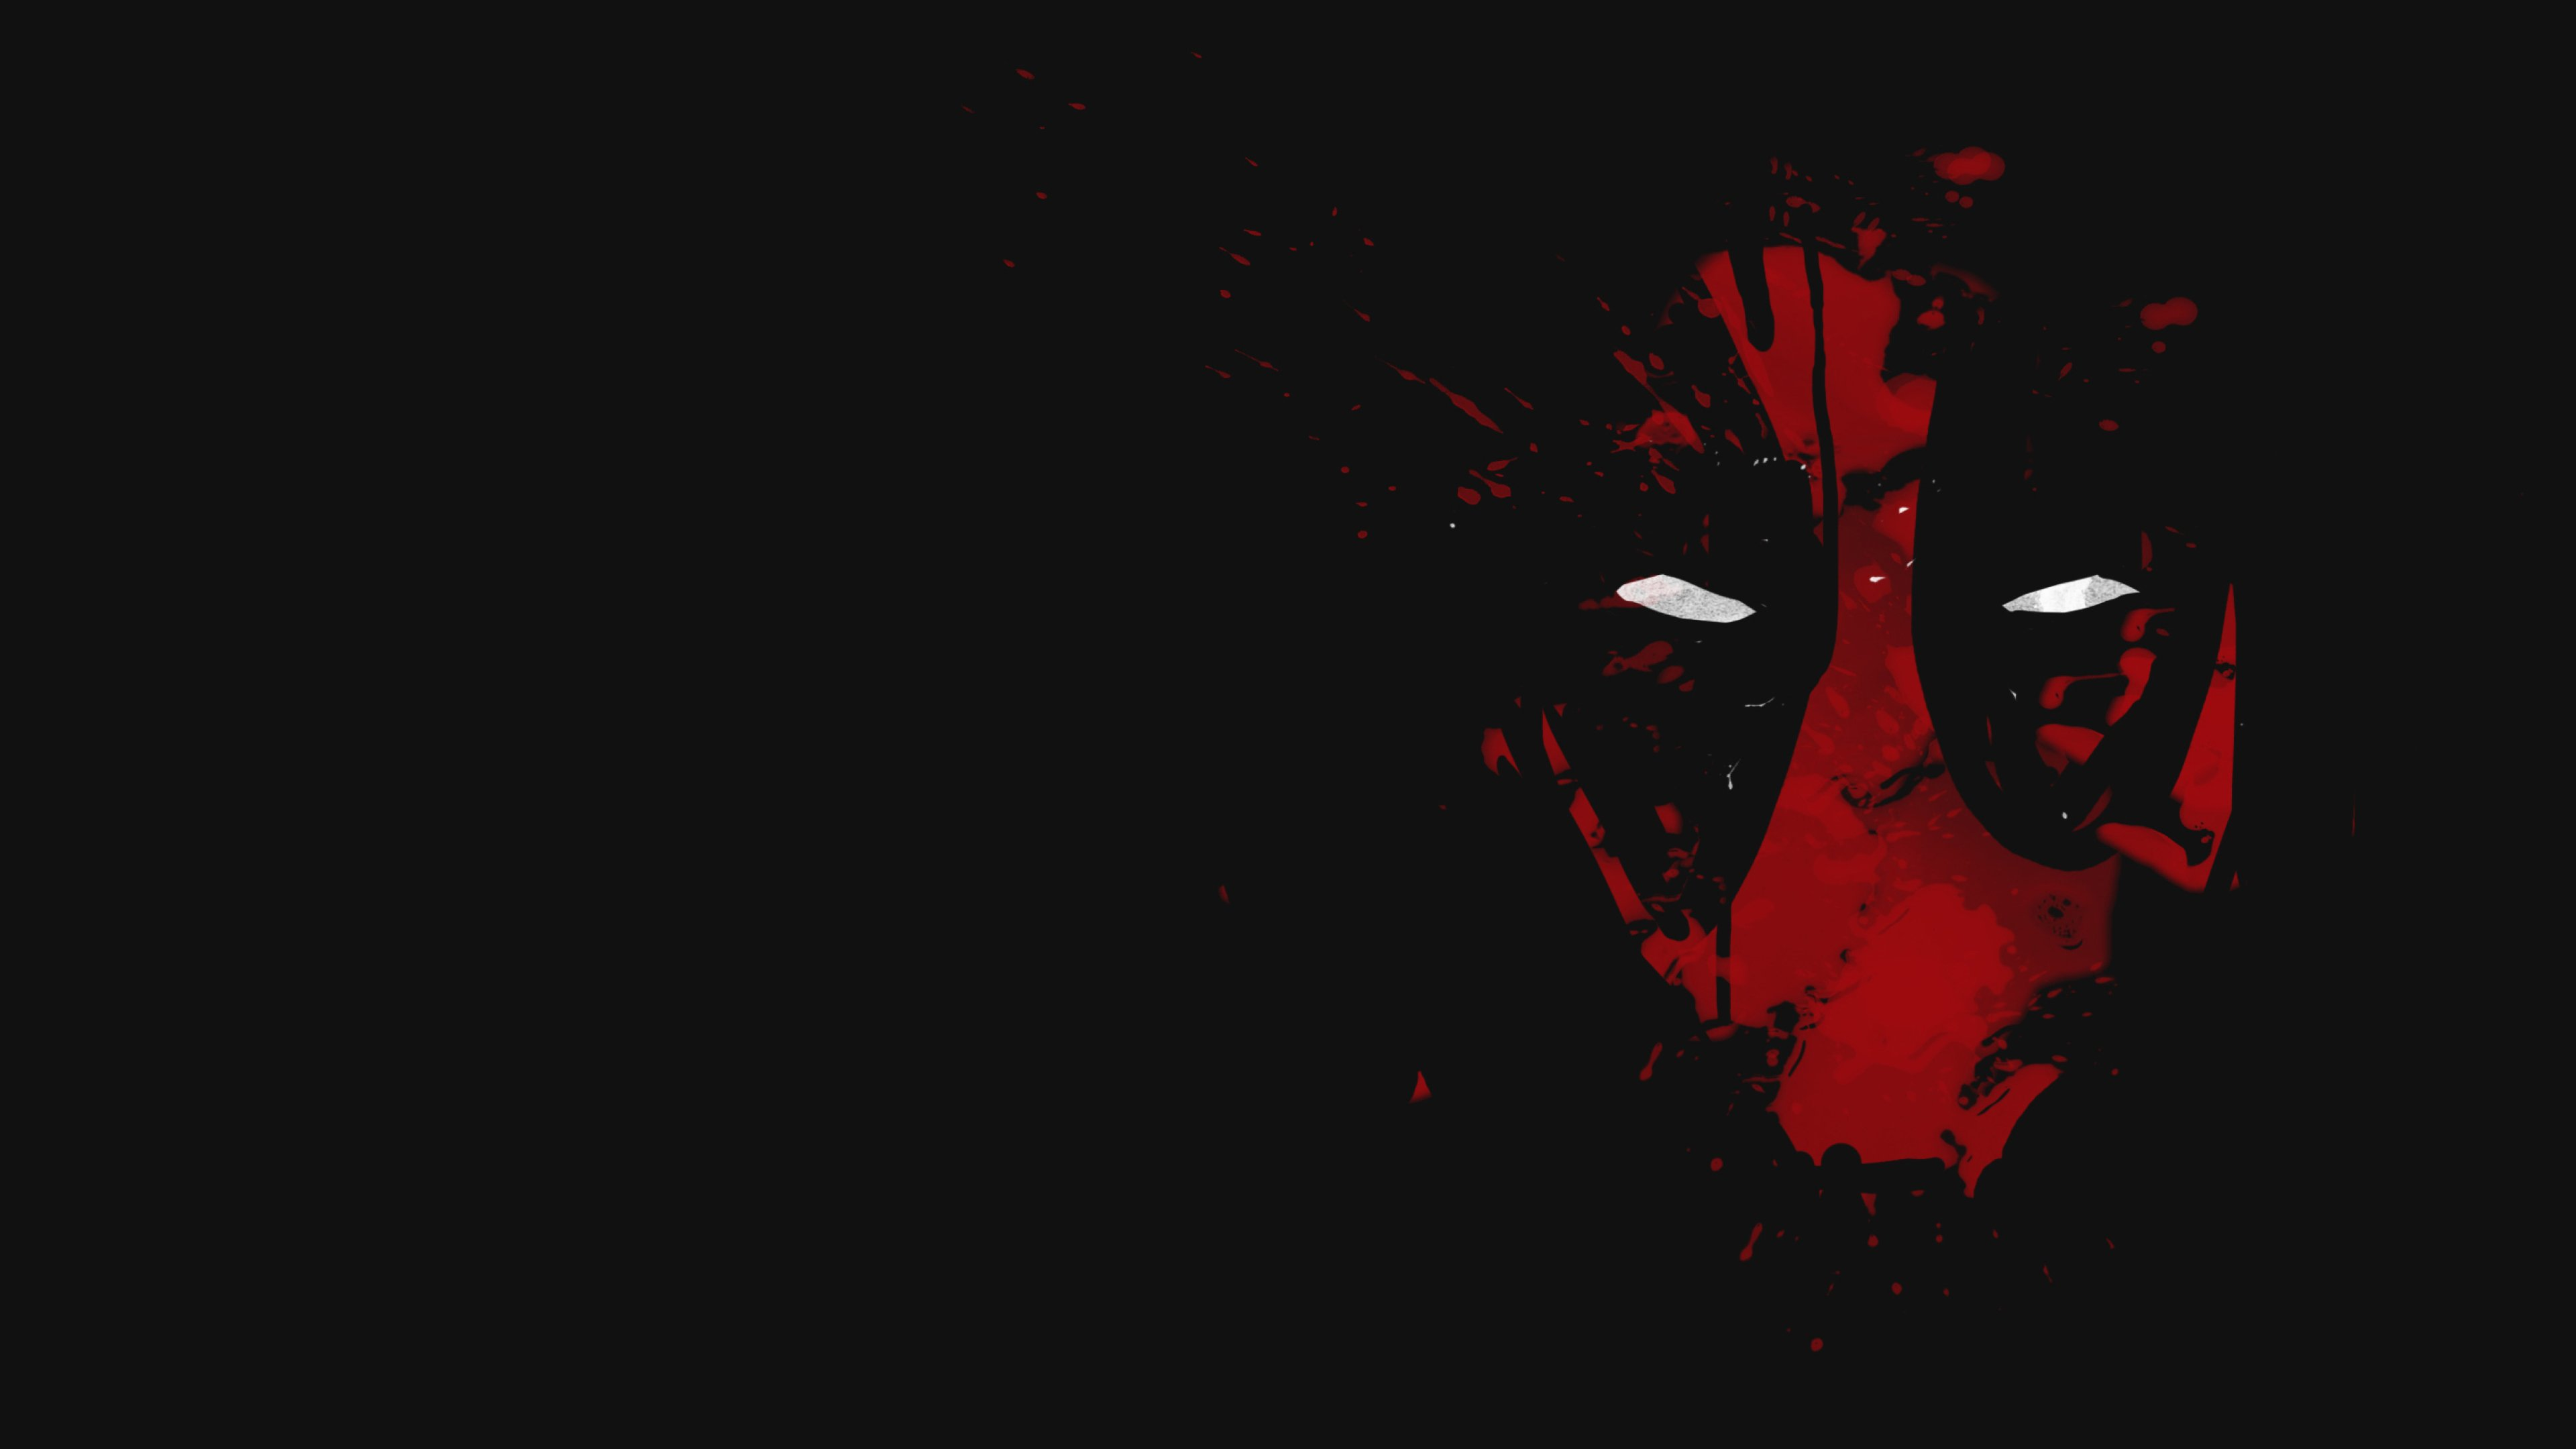 Deadpool Abstract 4k HD Superheroes Wallpapers Images